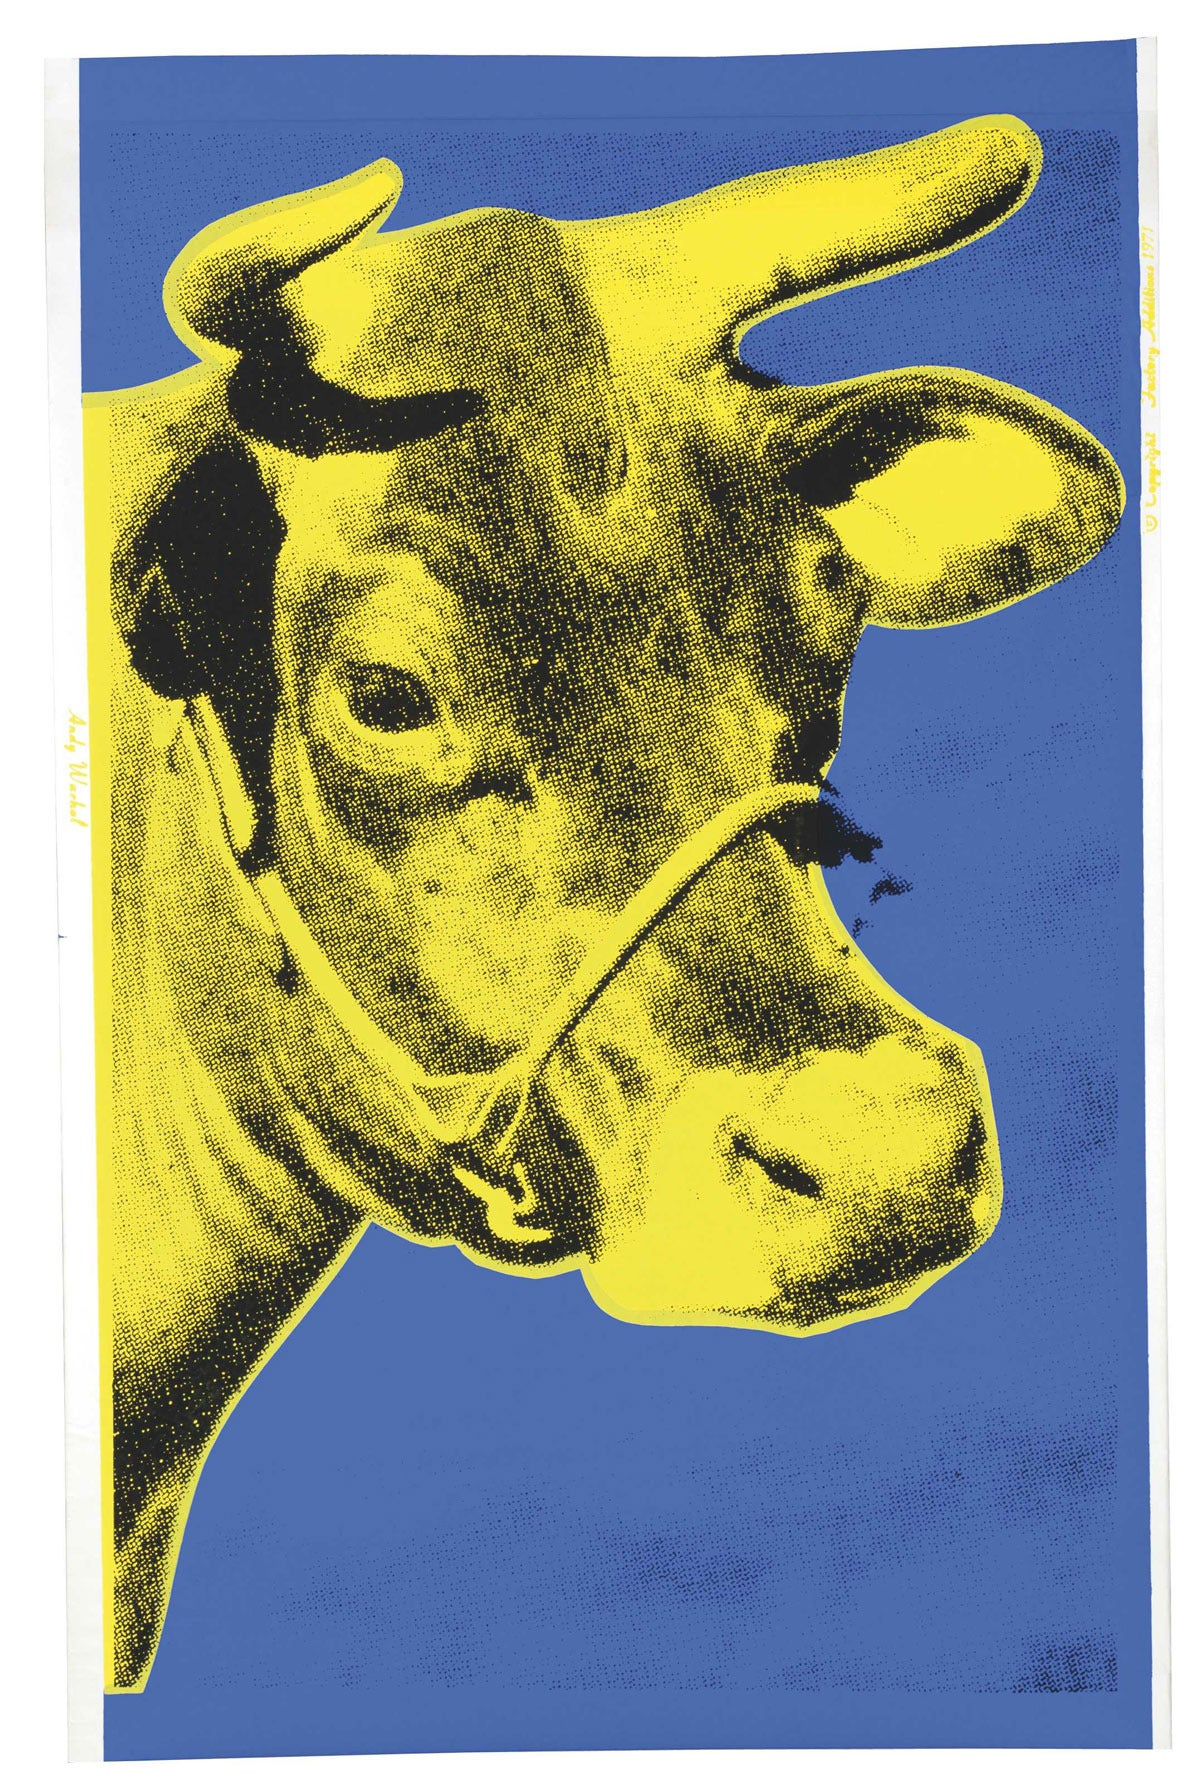 Andy Warhol Animal Print - Cow, Blue and Yellow (FS II.12)